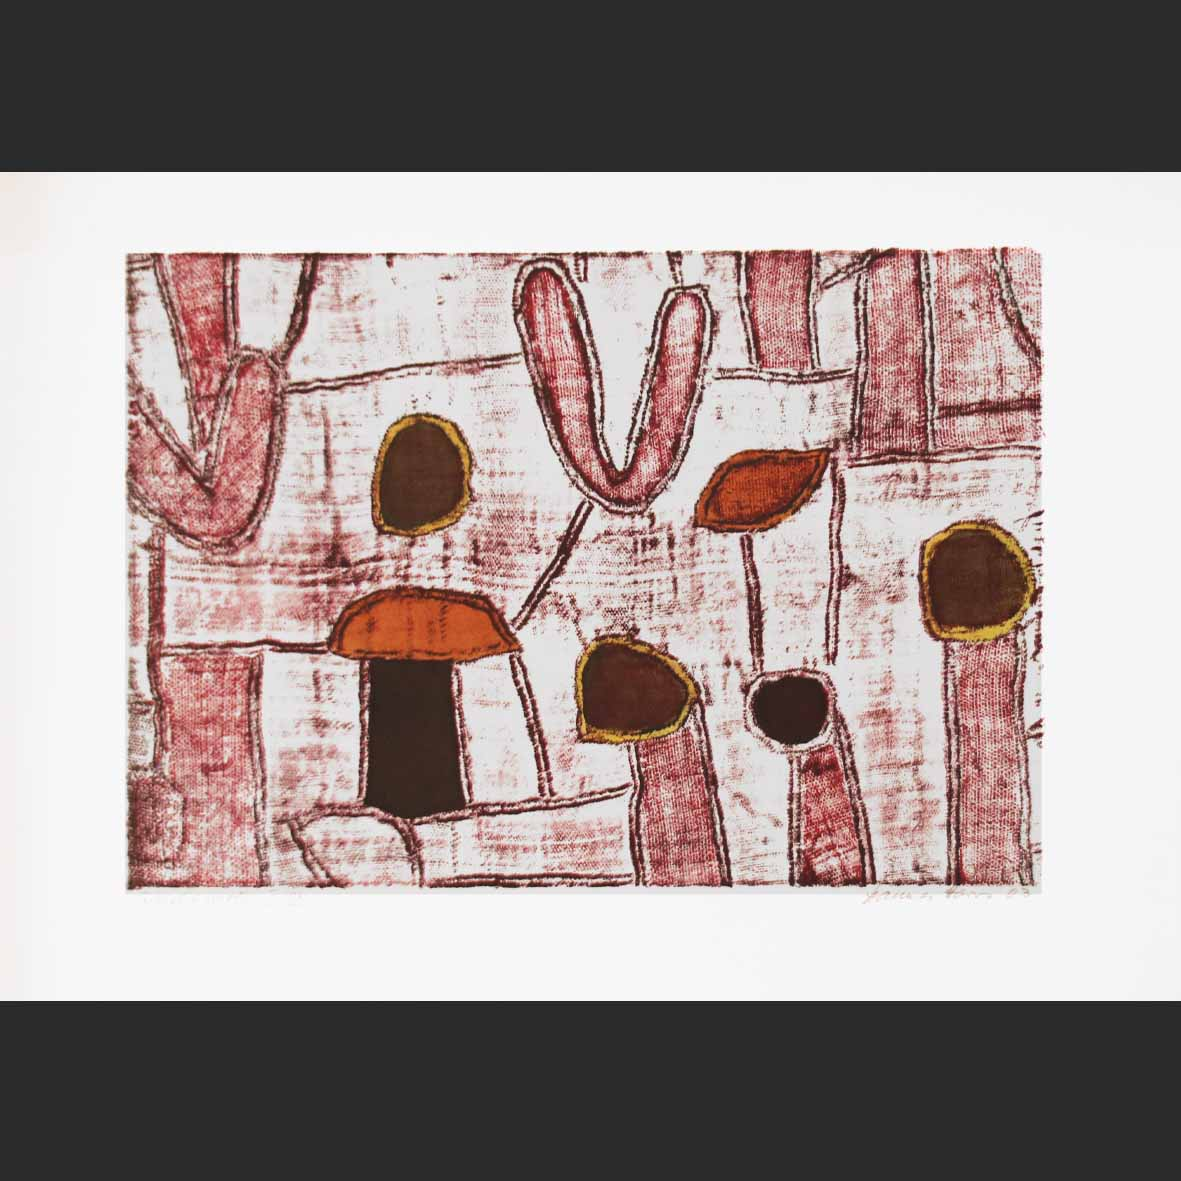 Hannes Haars, (SA 1927 - 2006) Abstracts Lithograph 20of30 26 cm x 39cm